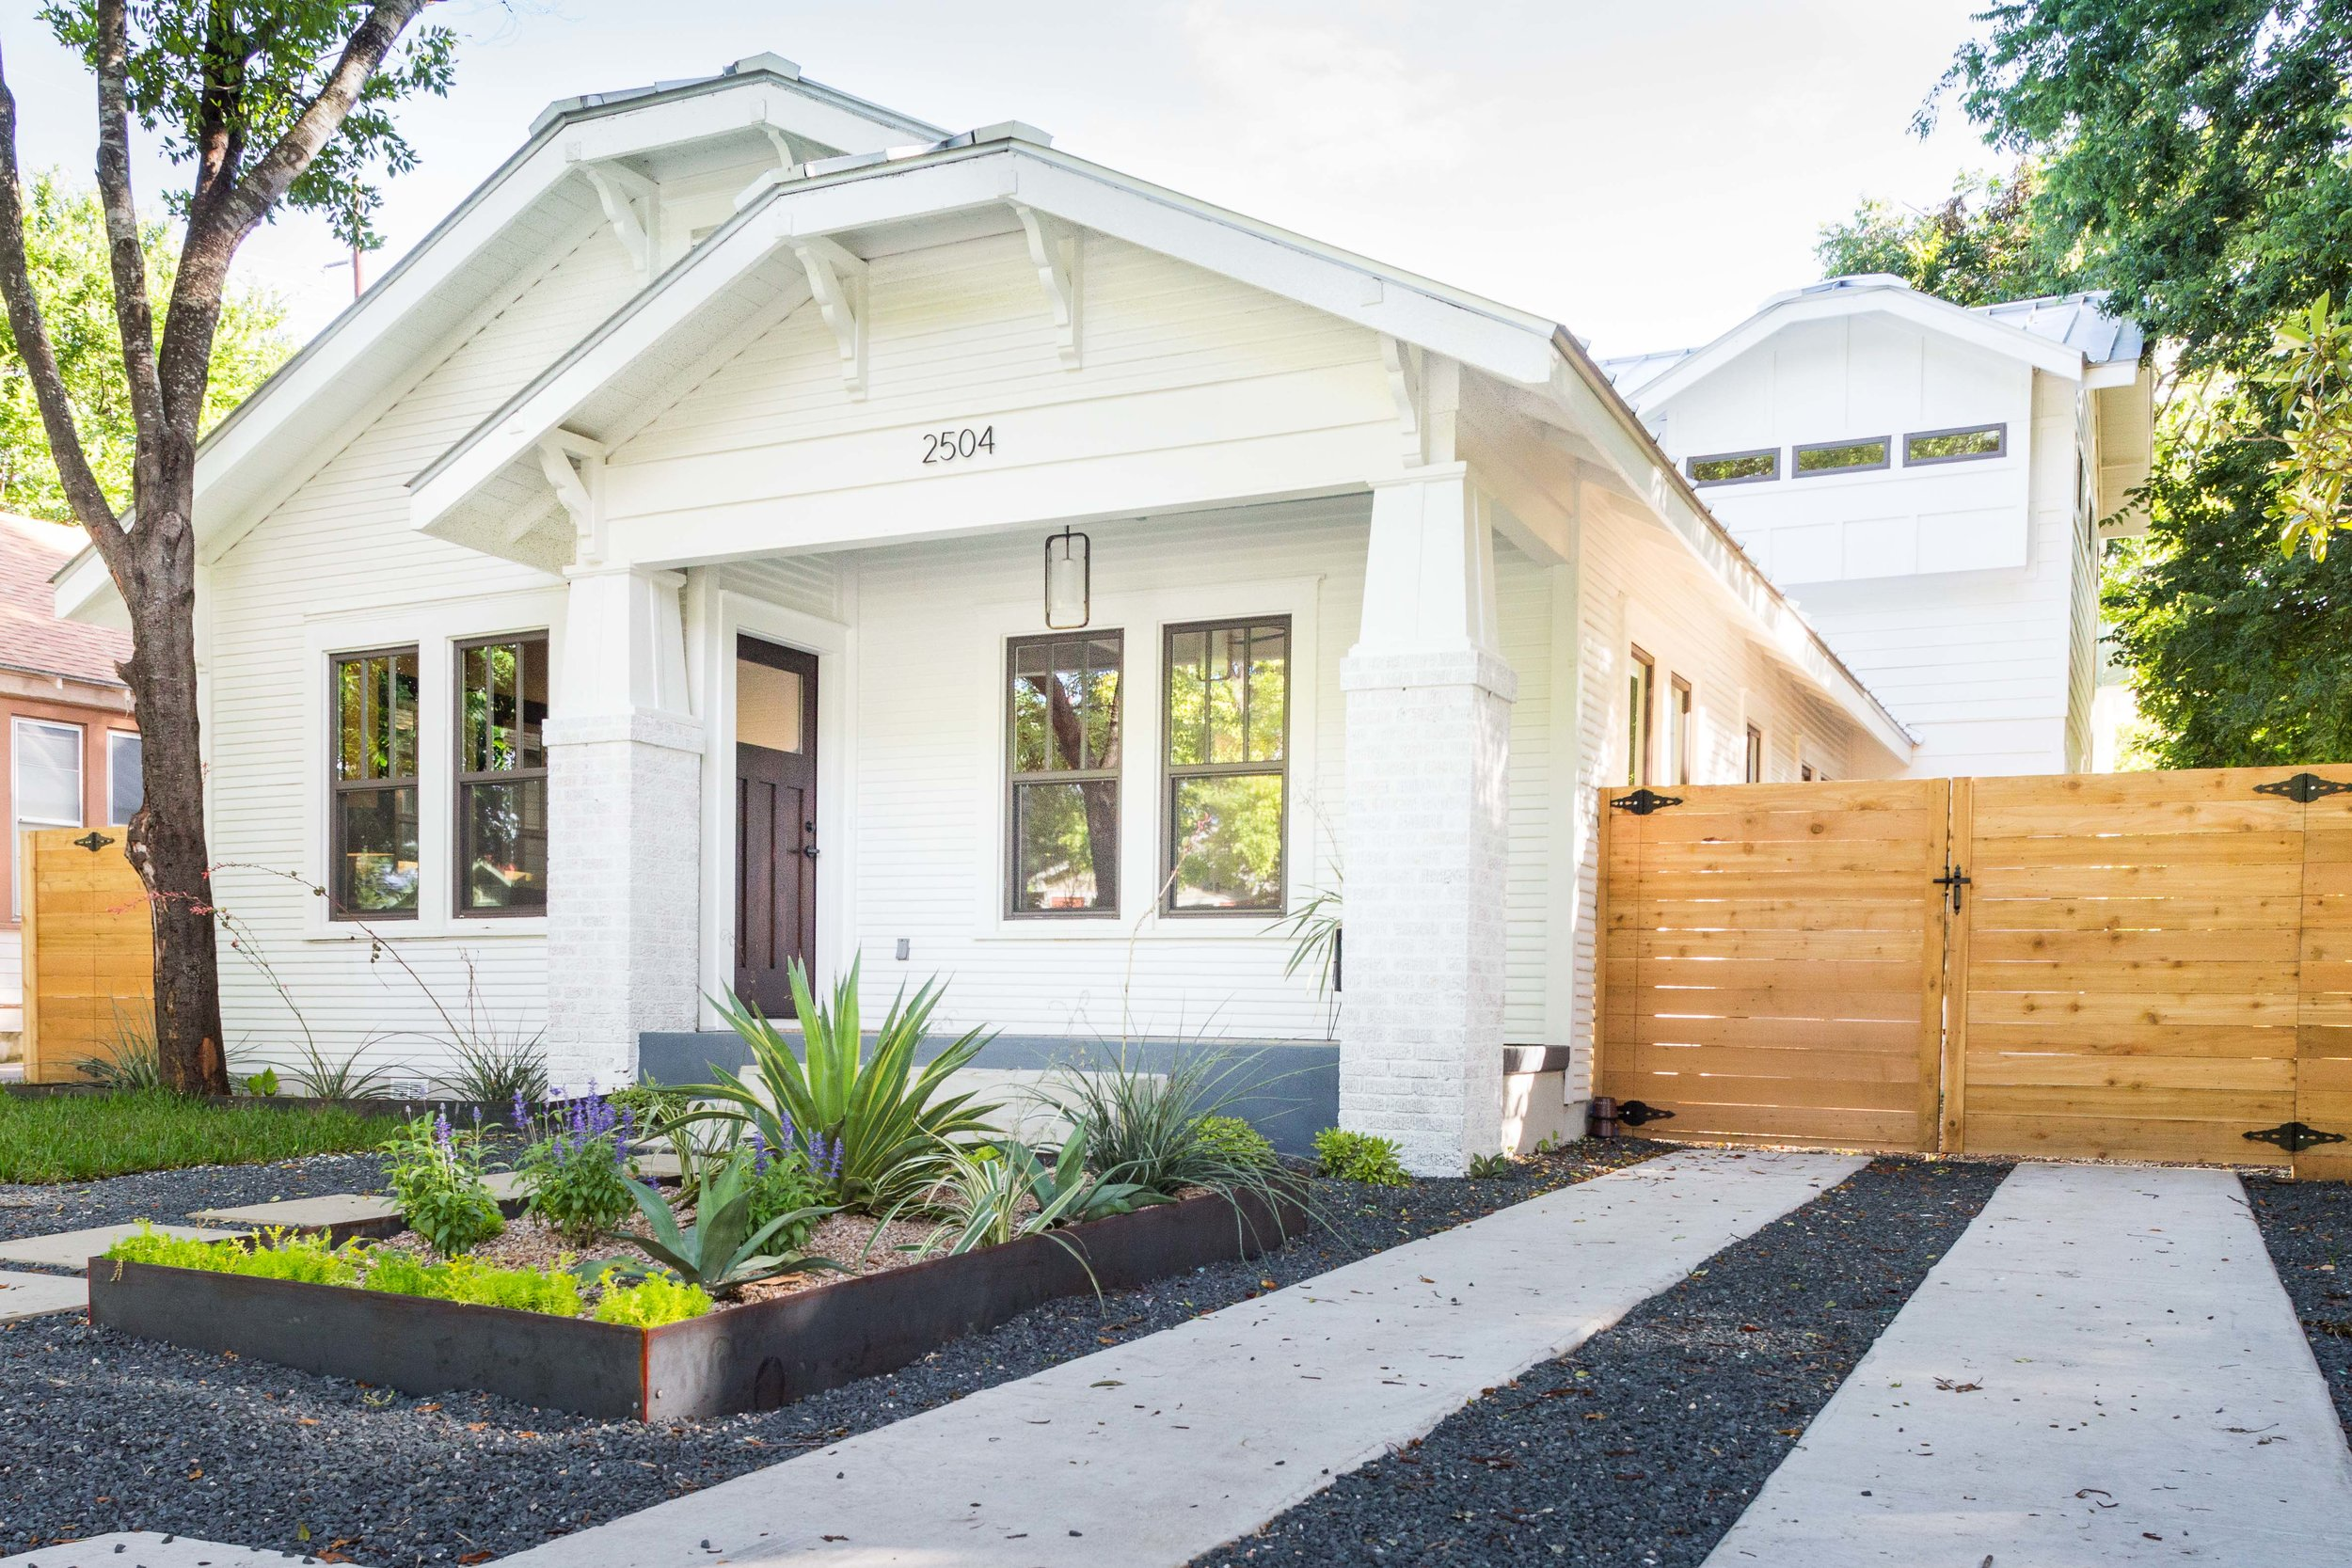 2504_WillowA_-_East_Austin_Bungalow_with_Modern_Addition_-_Holly_neighborhood-9754[1].jpg